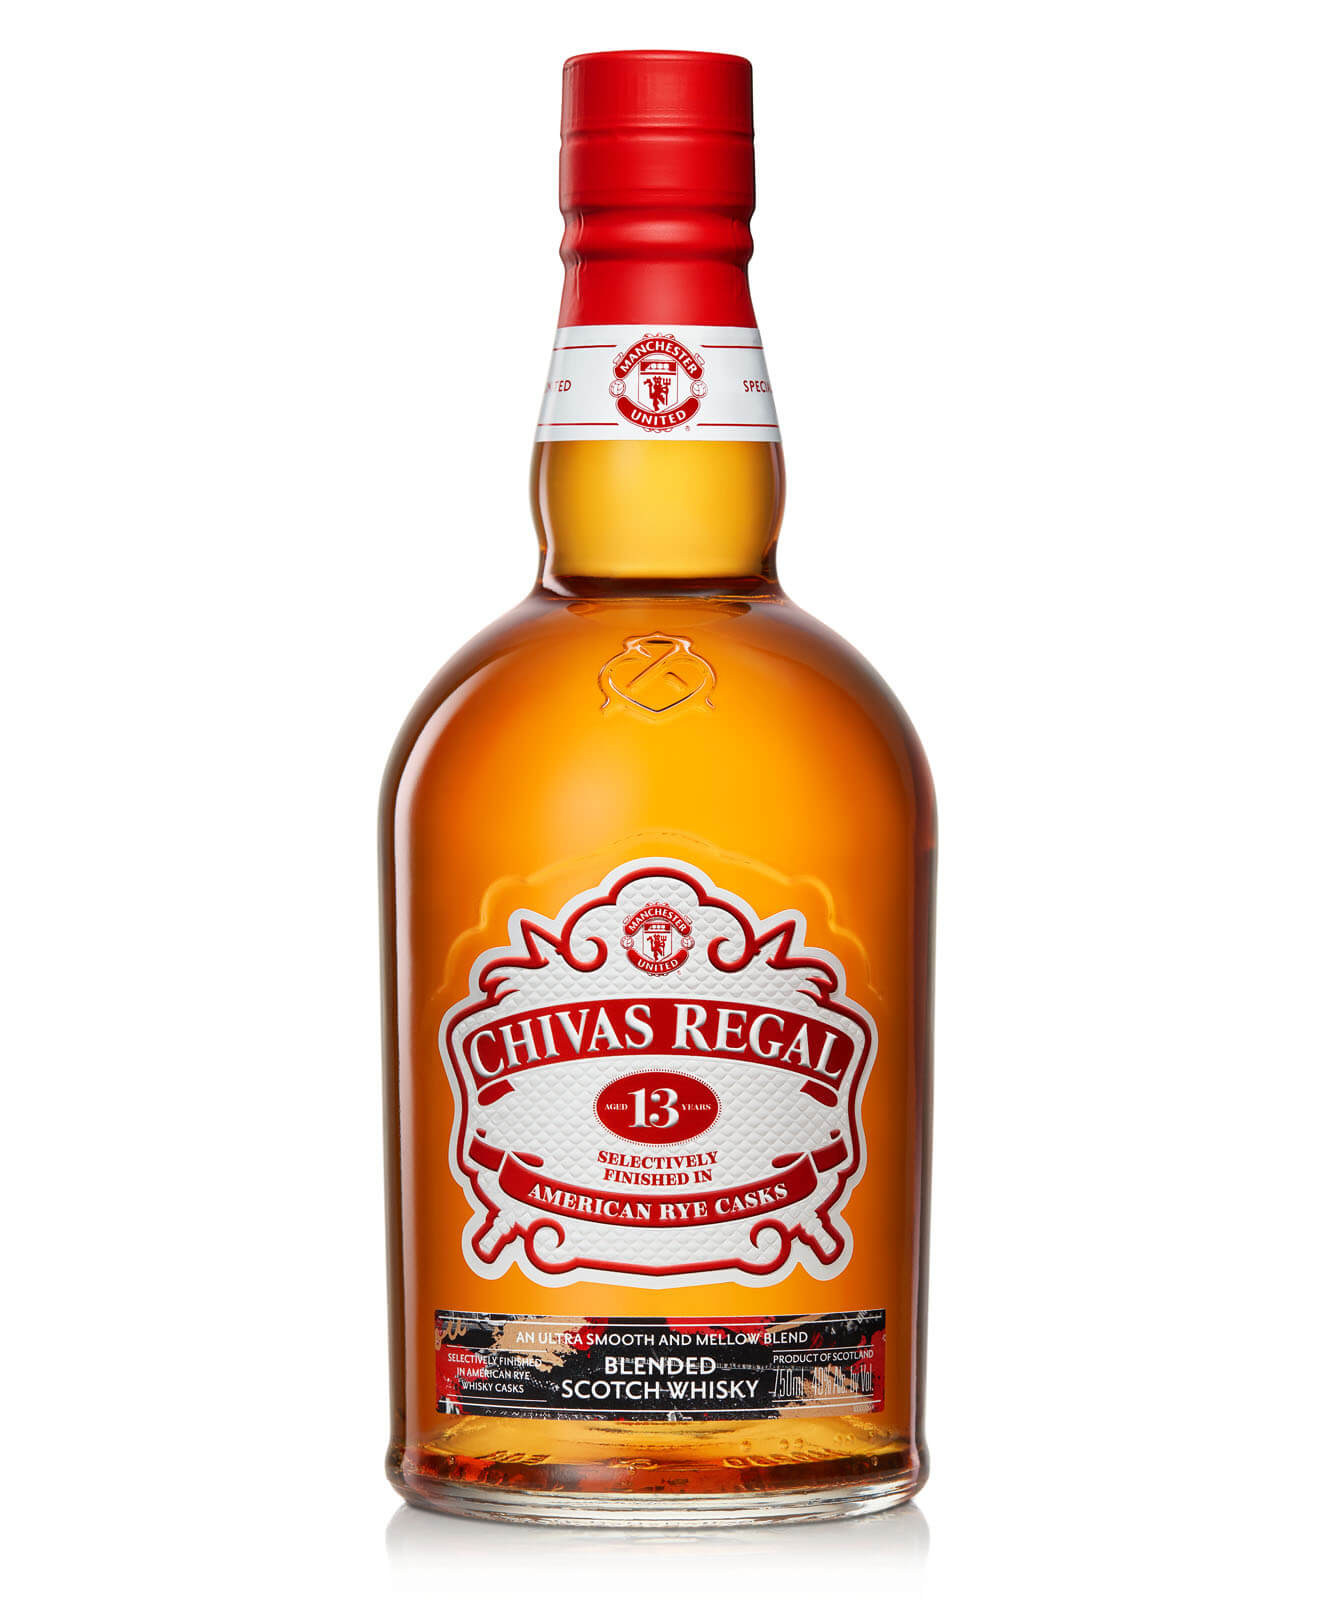 Chivas Regal 13 Manchester United Special Edition